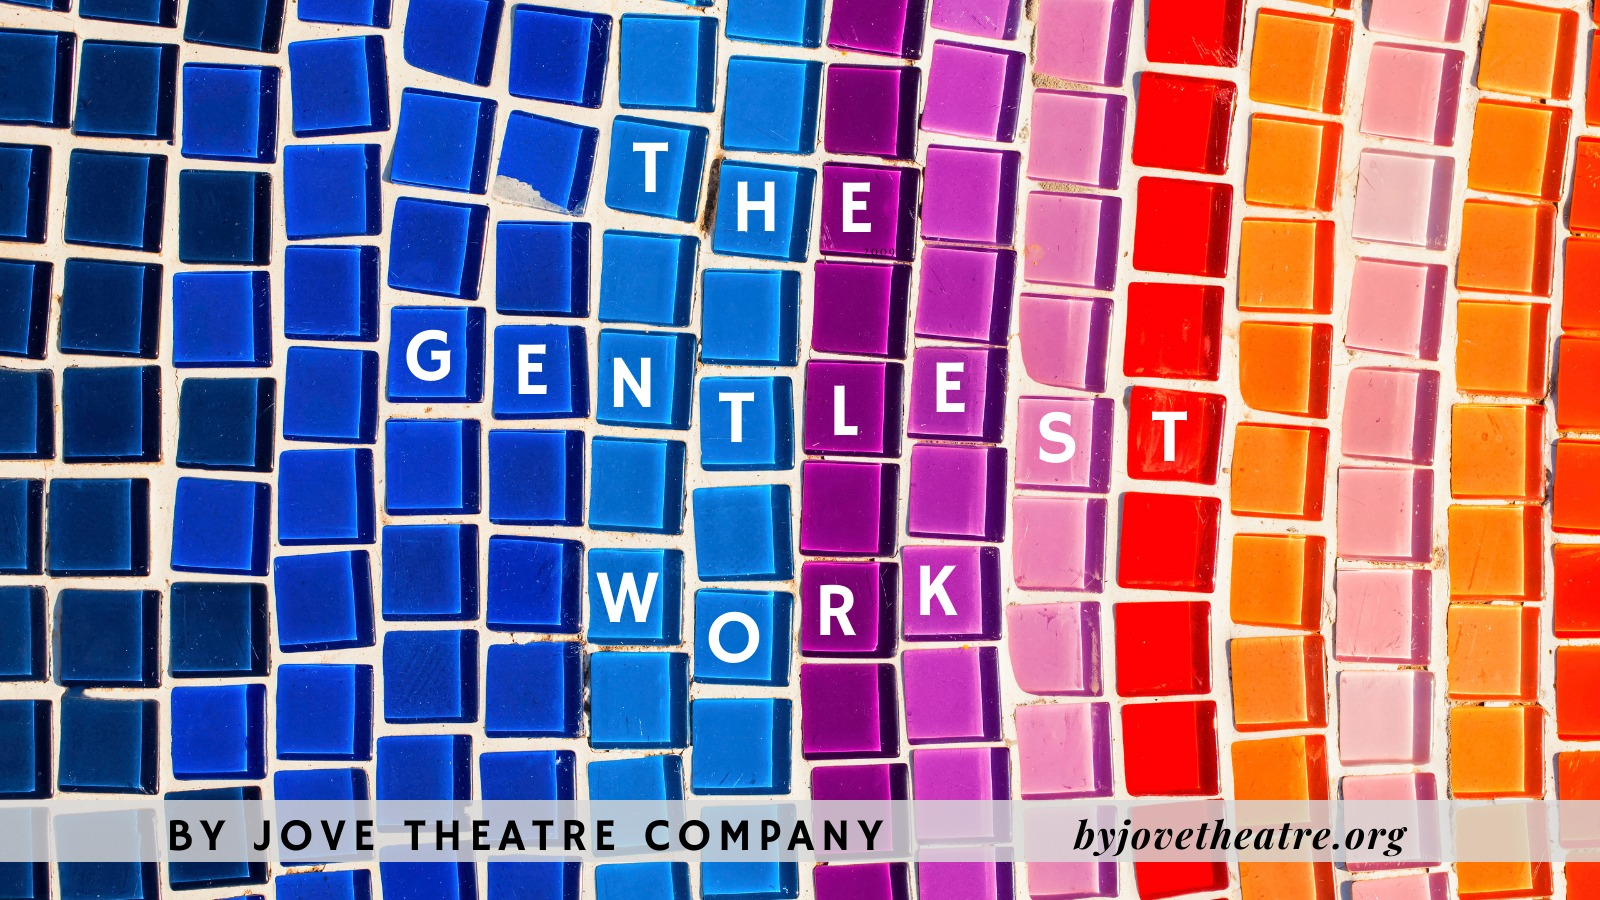 Figure 4. Poster for By Jove Theatre Company's The Gentlest Work.